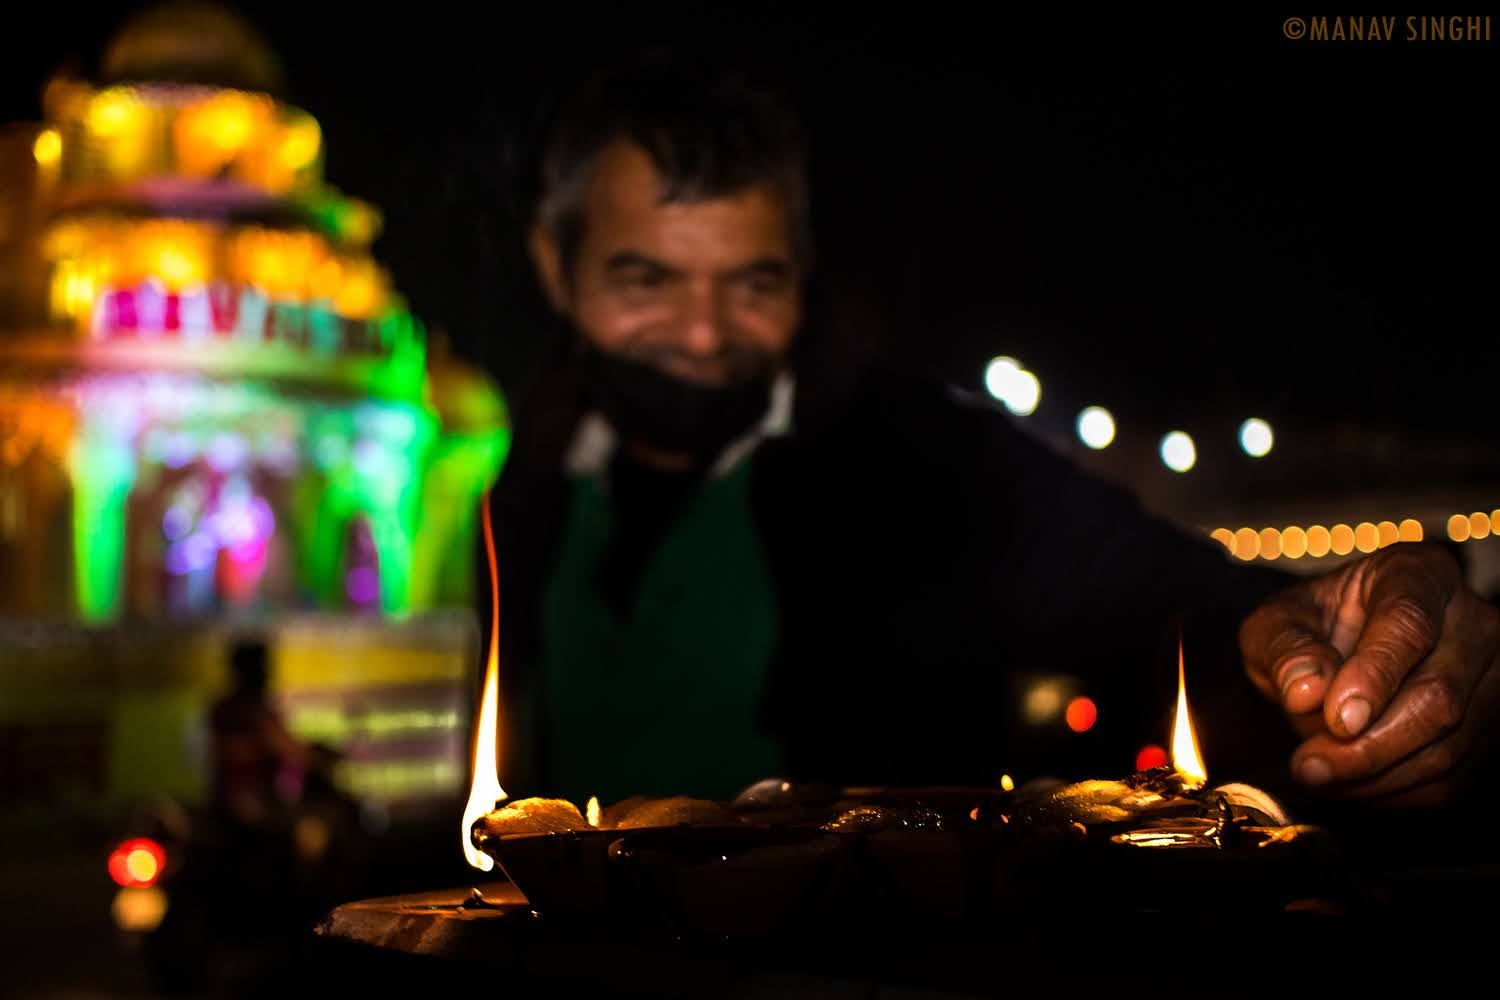 Diwali Decoration - Choti Chopar, Jaipur 2020 and Street Photography.